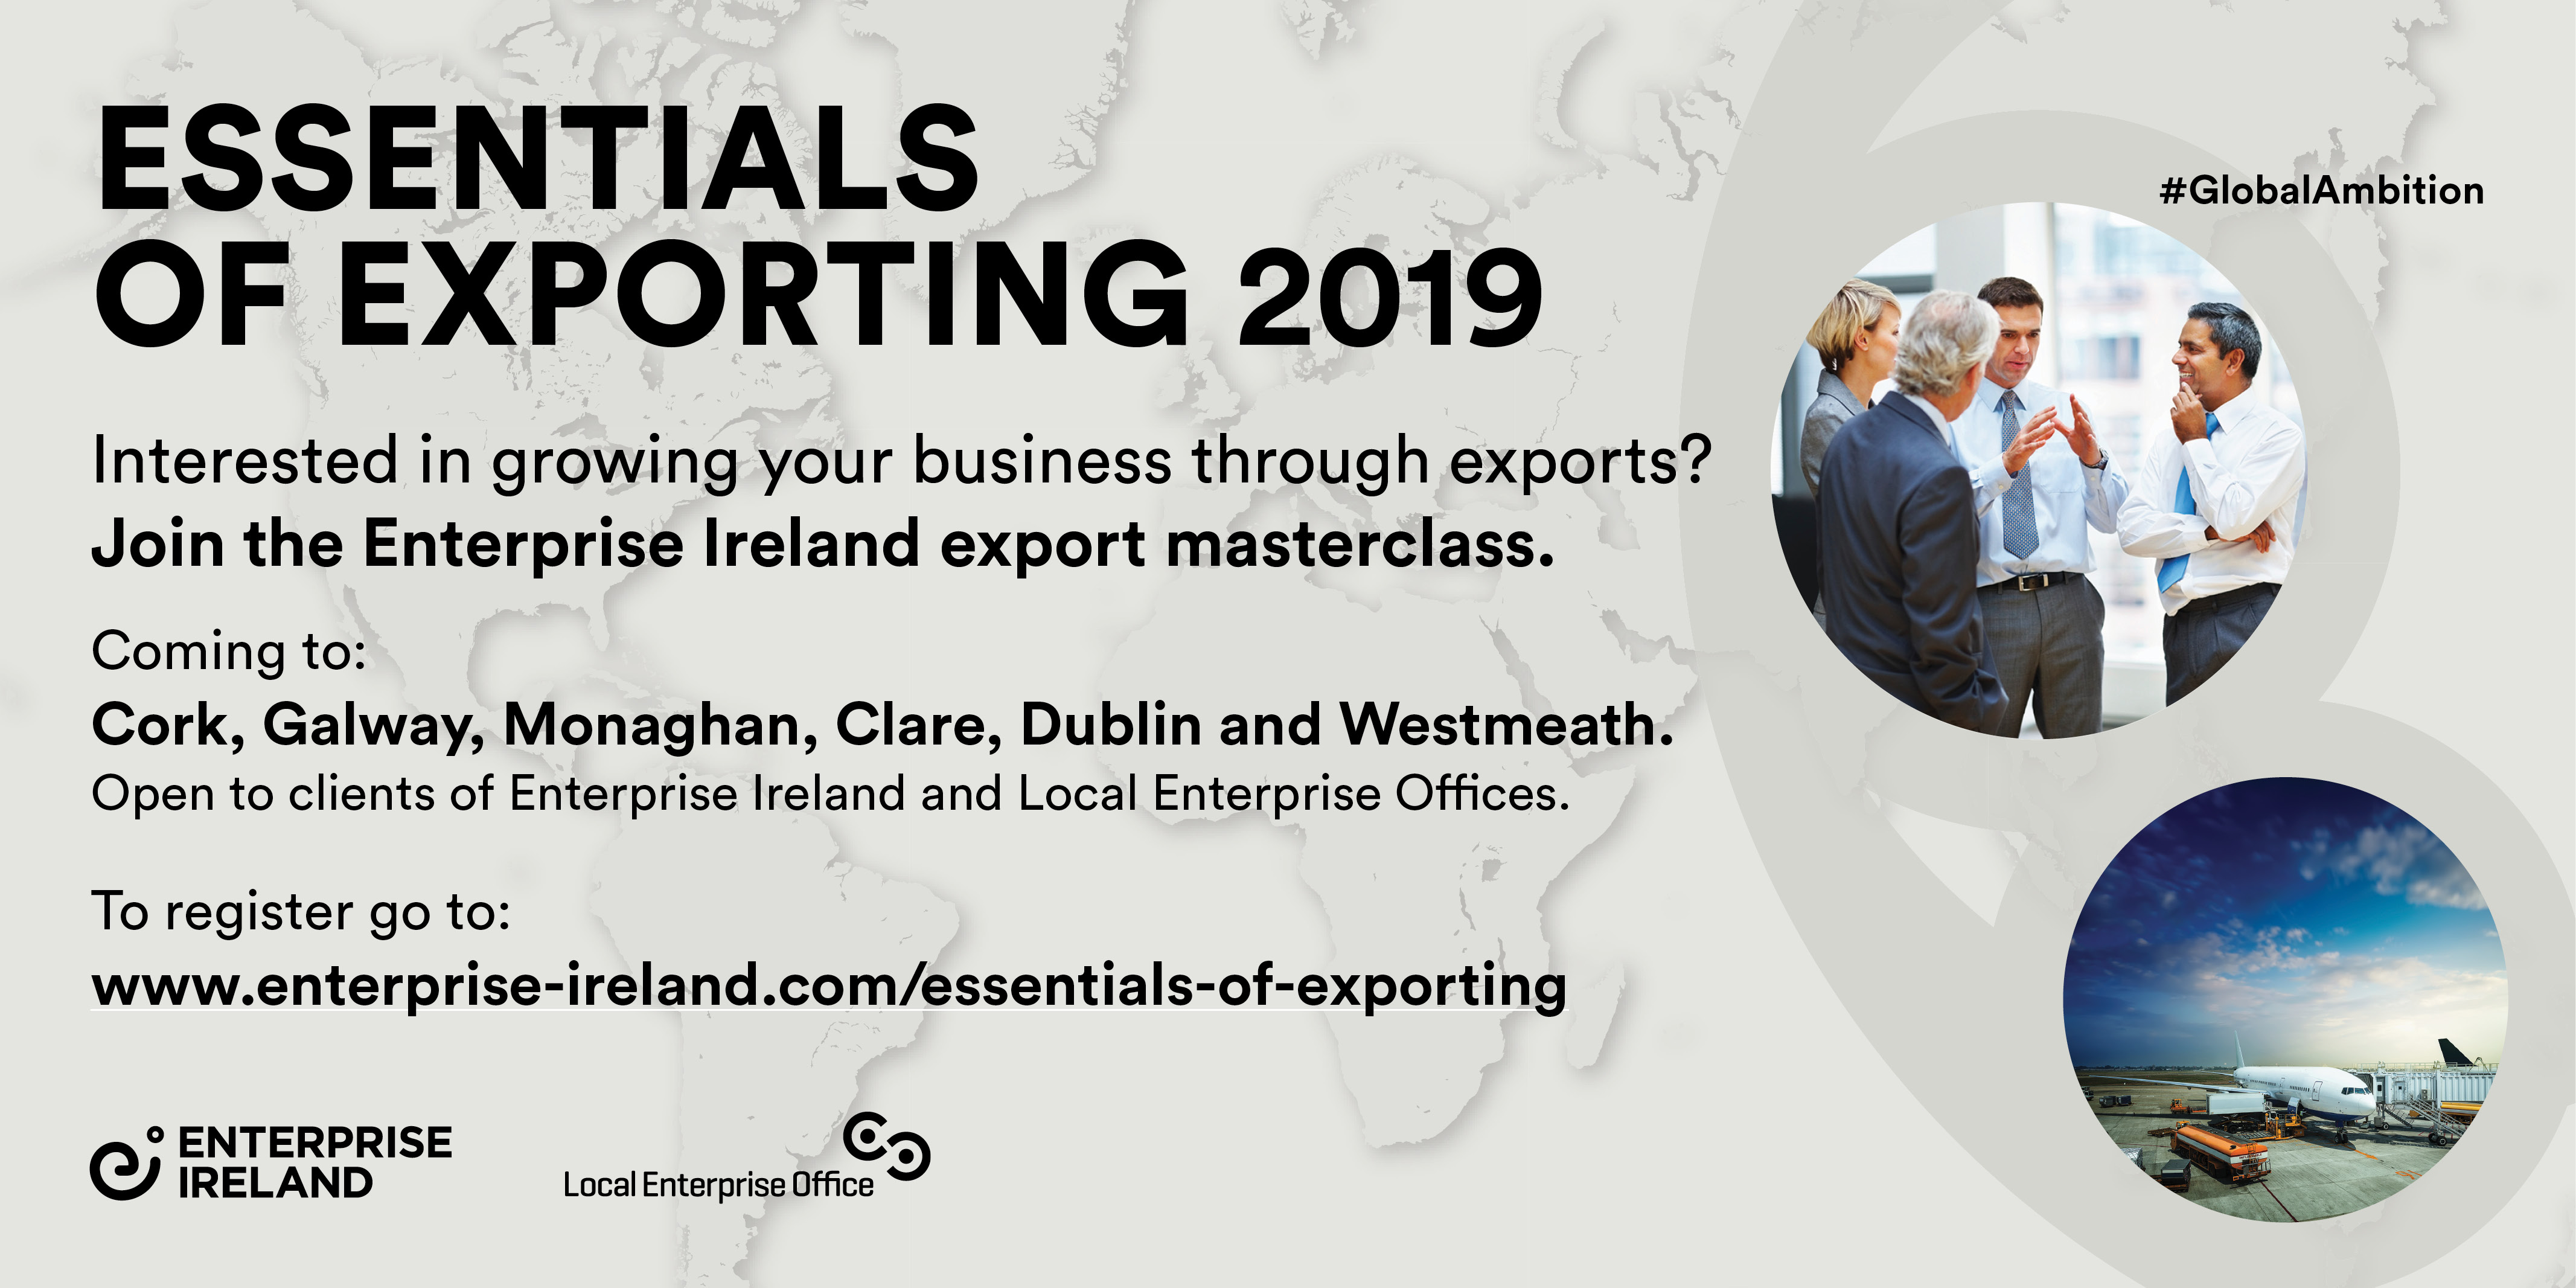 Essentials of Exporting Masterclasses